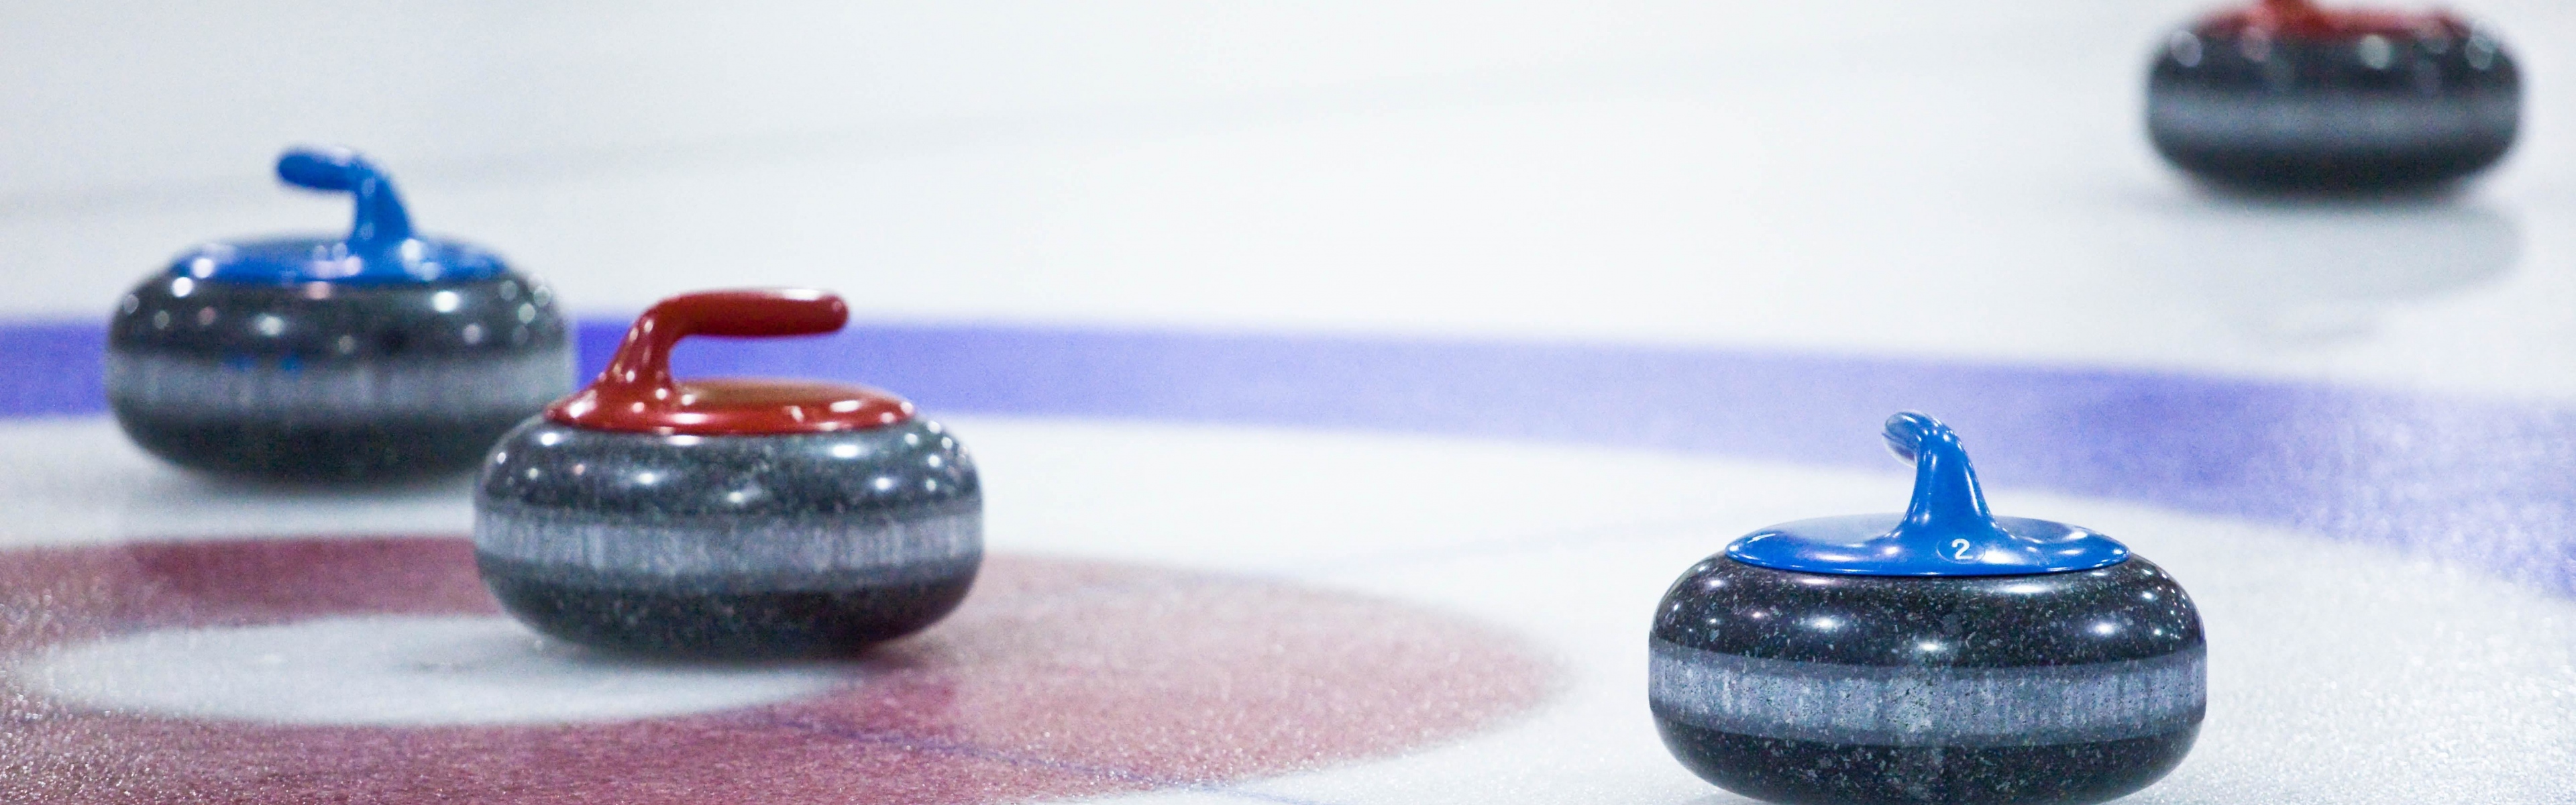 3840x1200 - Curling Wallpapers 4